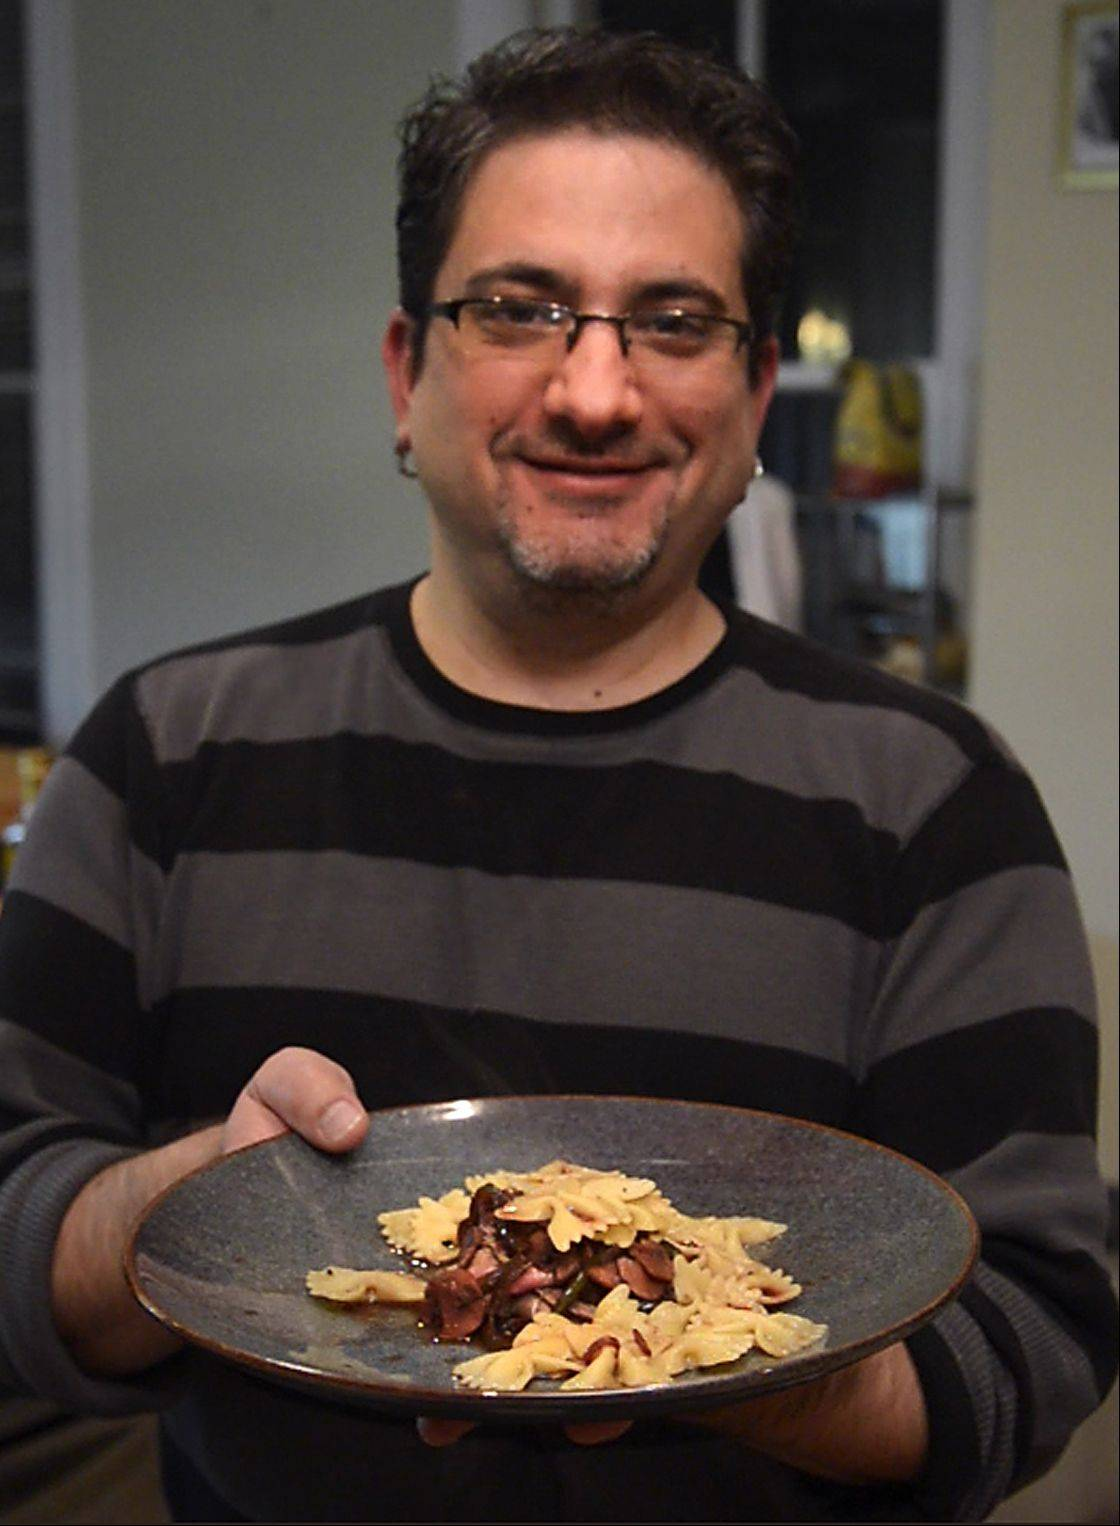 Tony Aiello of Elgin focuses his creative culinary juices on sauces, like the burgundy and balsamic reduction, at right, he makes for steak and pasta.